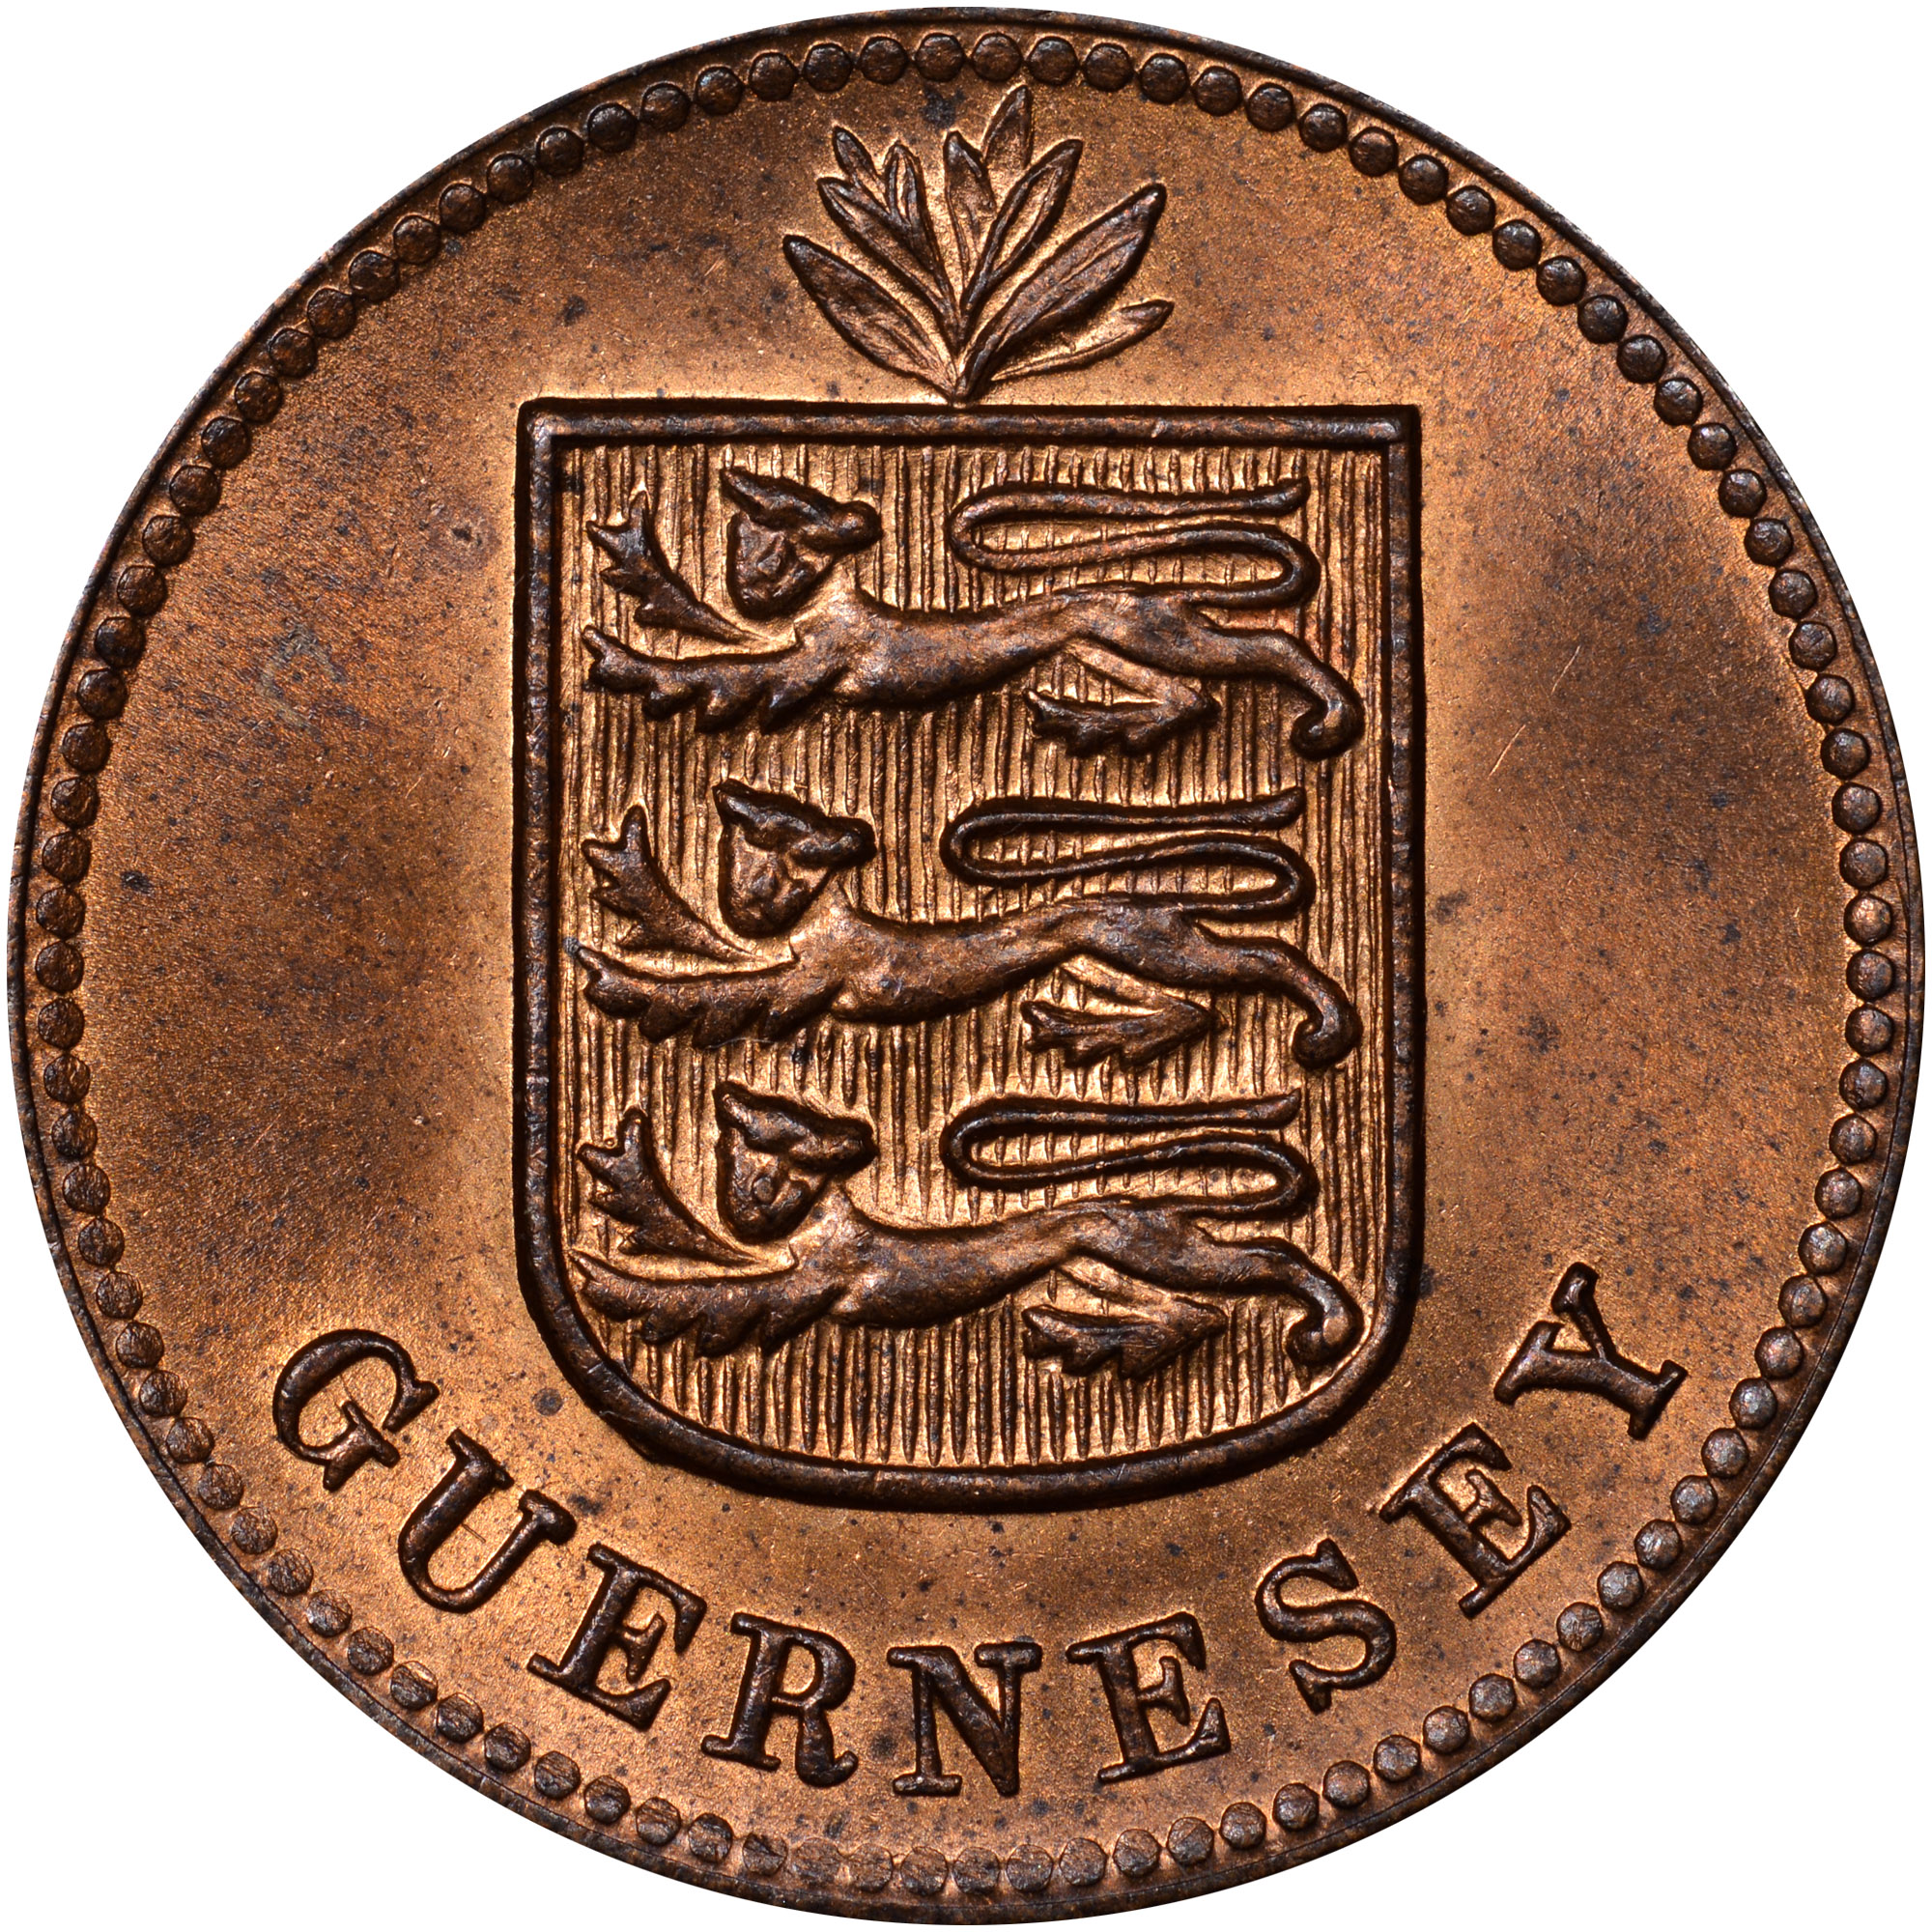 Guernsey Double obverse